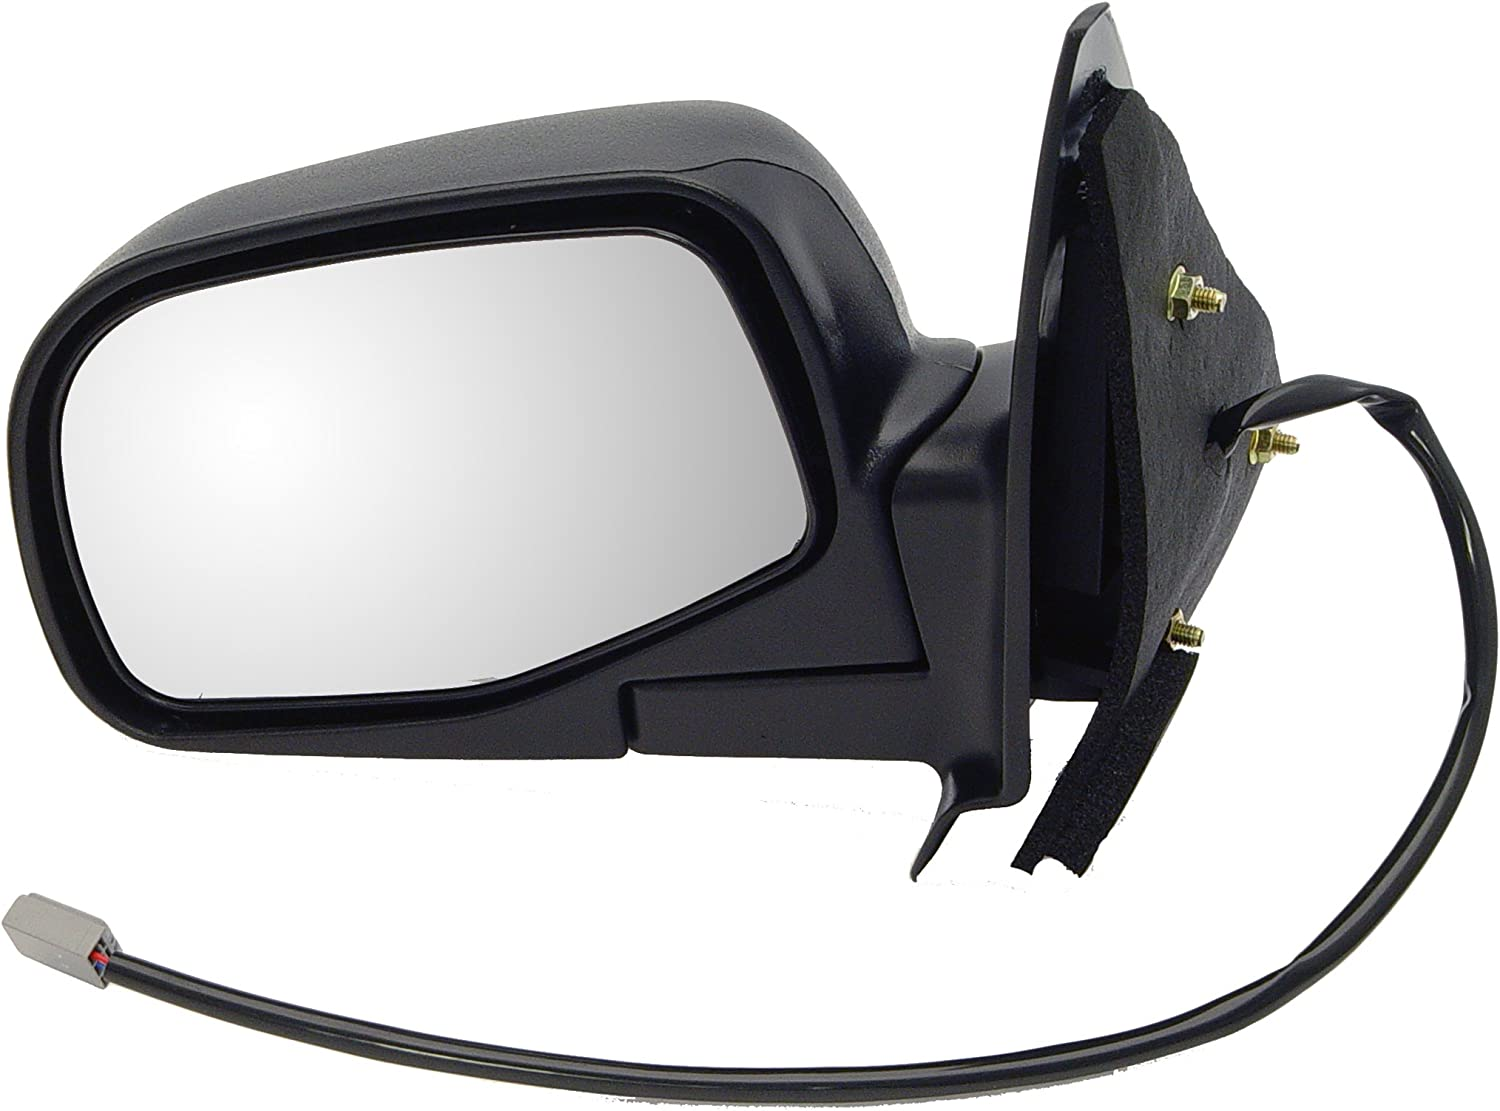 Dorman 955-355 Driver Side Power Door Ranking TOP10 for Ford Mod low-pricing Select Mirror